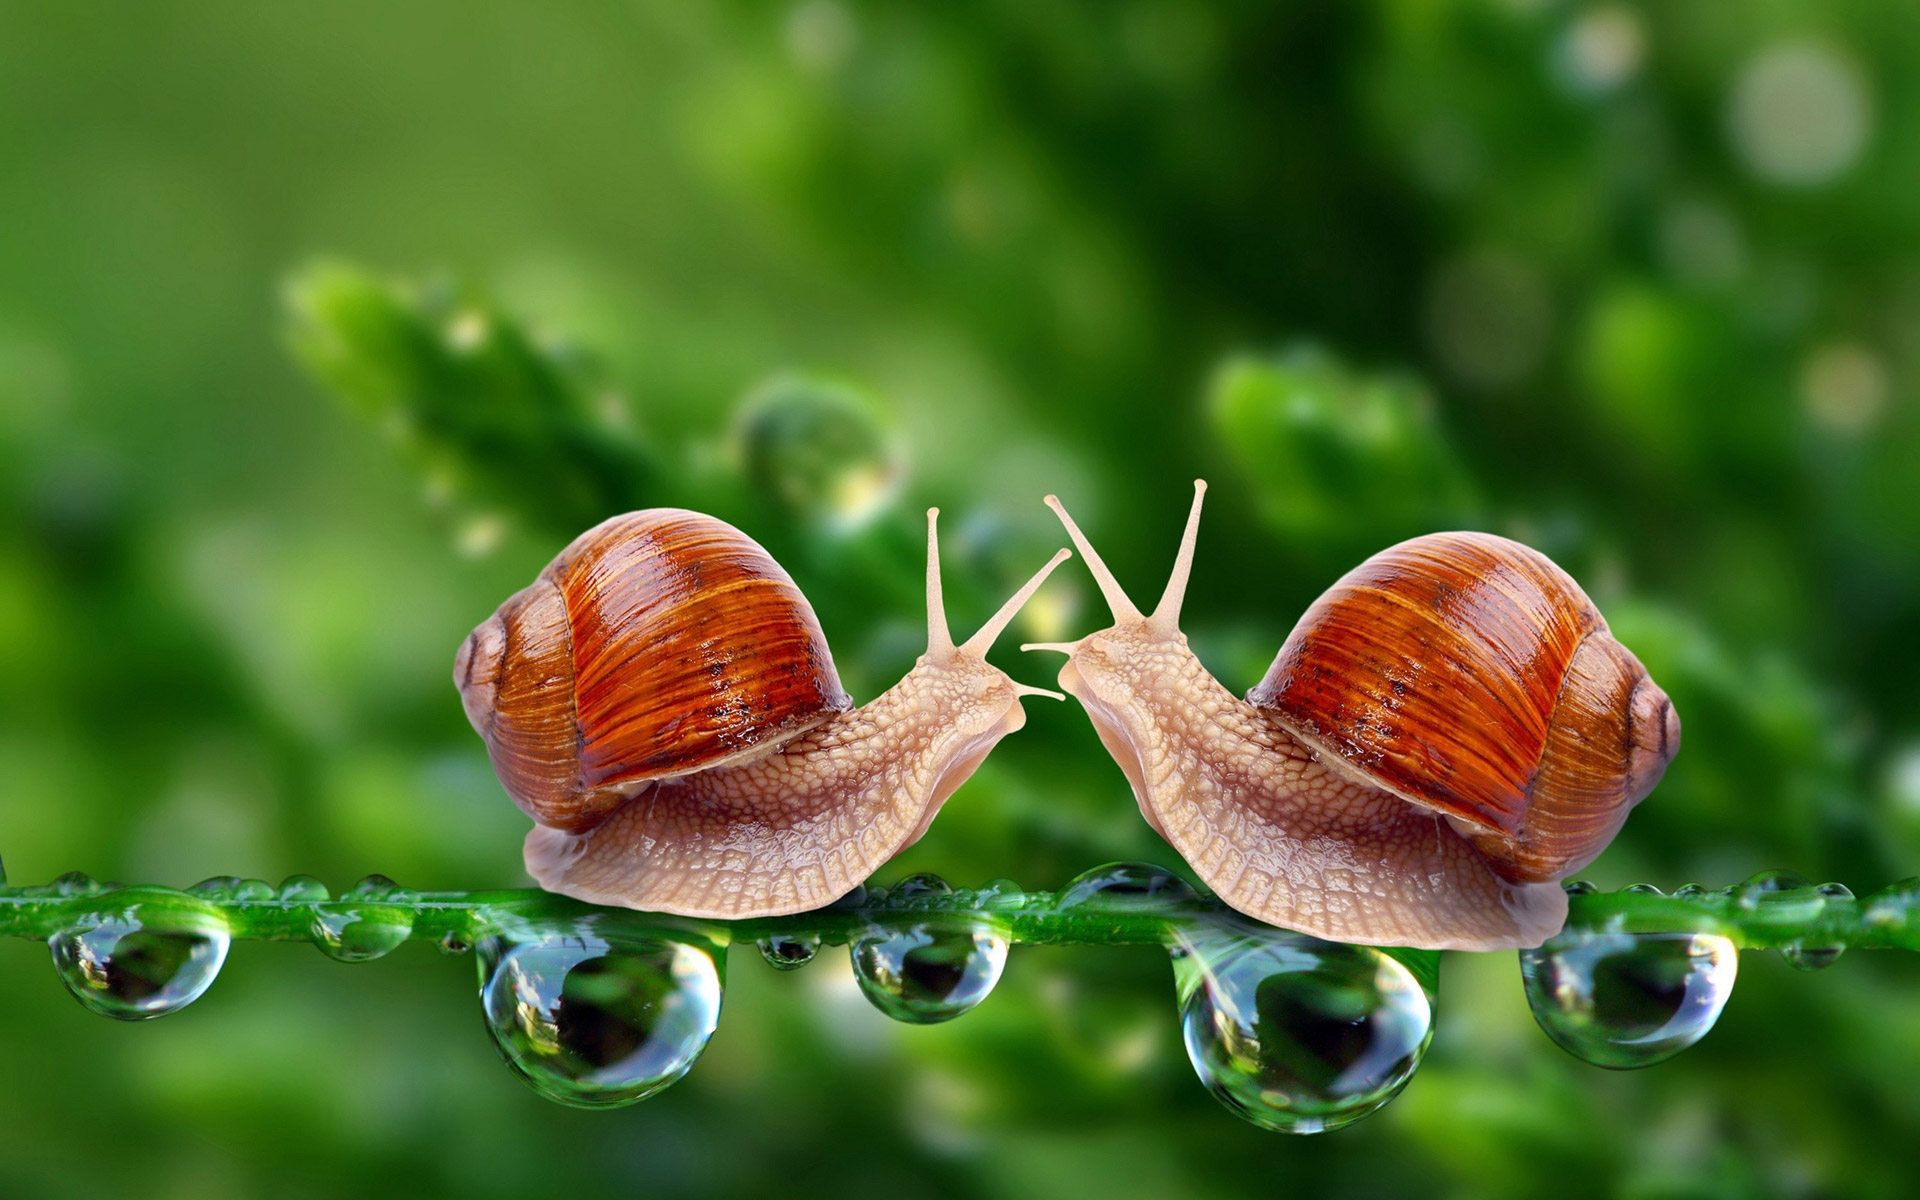 To set this Two-snails-in-love-on-a-tree-branch as wallpaper background on your Desktop, SmartPhone, Tablet, Laptop, iphone, ipad click above to open in a ...